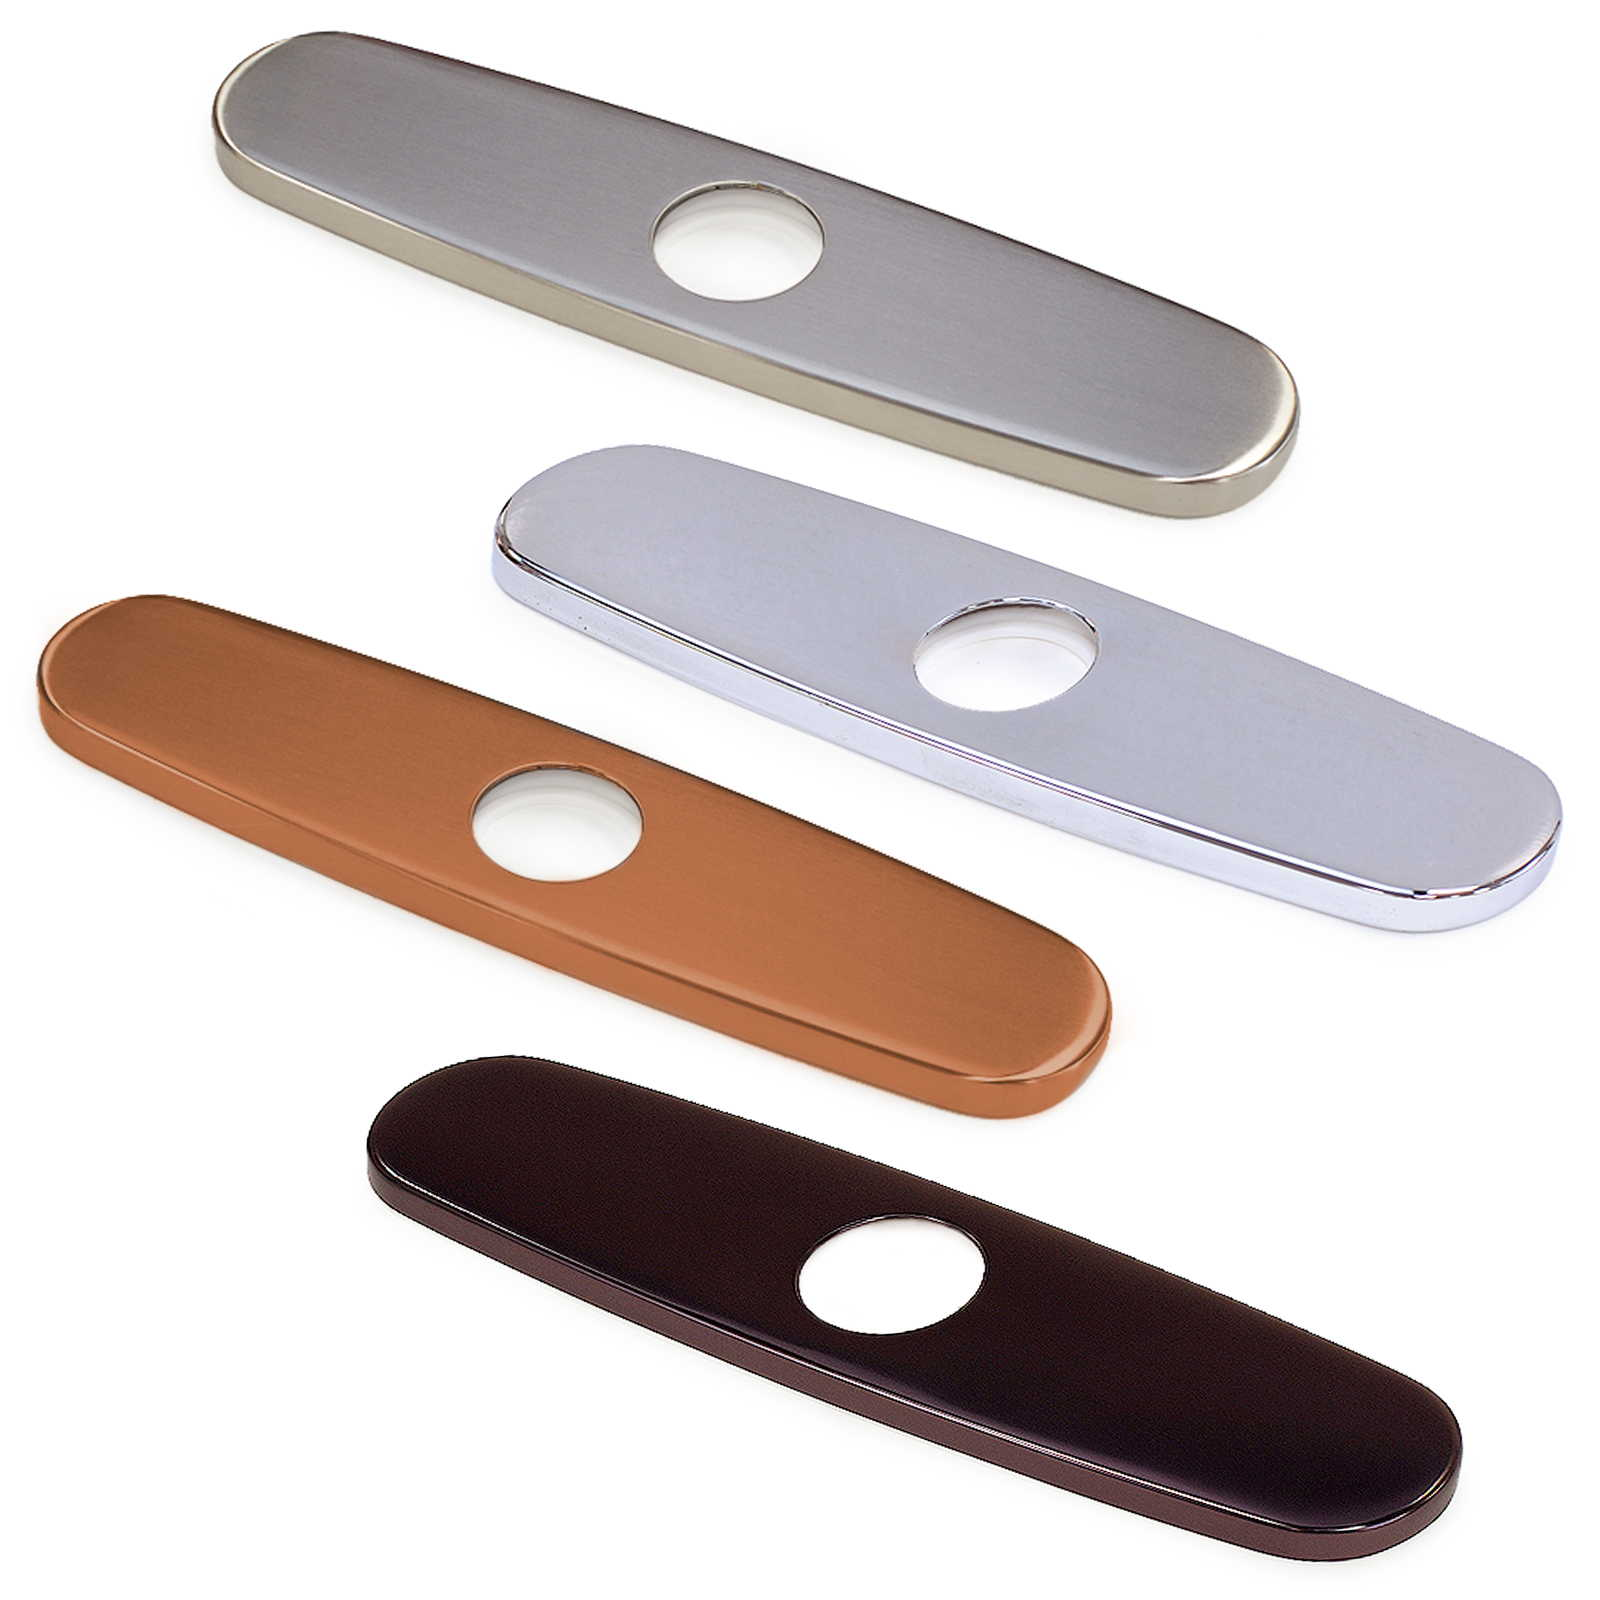 FREUER Faucets Kitchen Sink Hole Cover Plate - Multiple Finishes Available